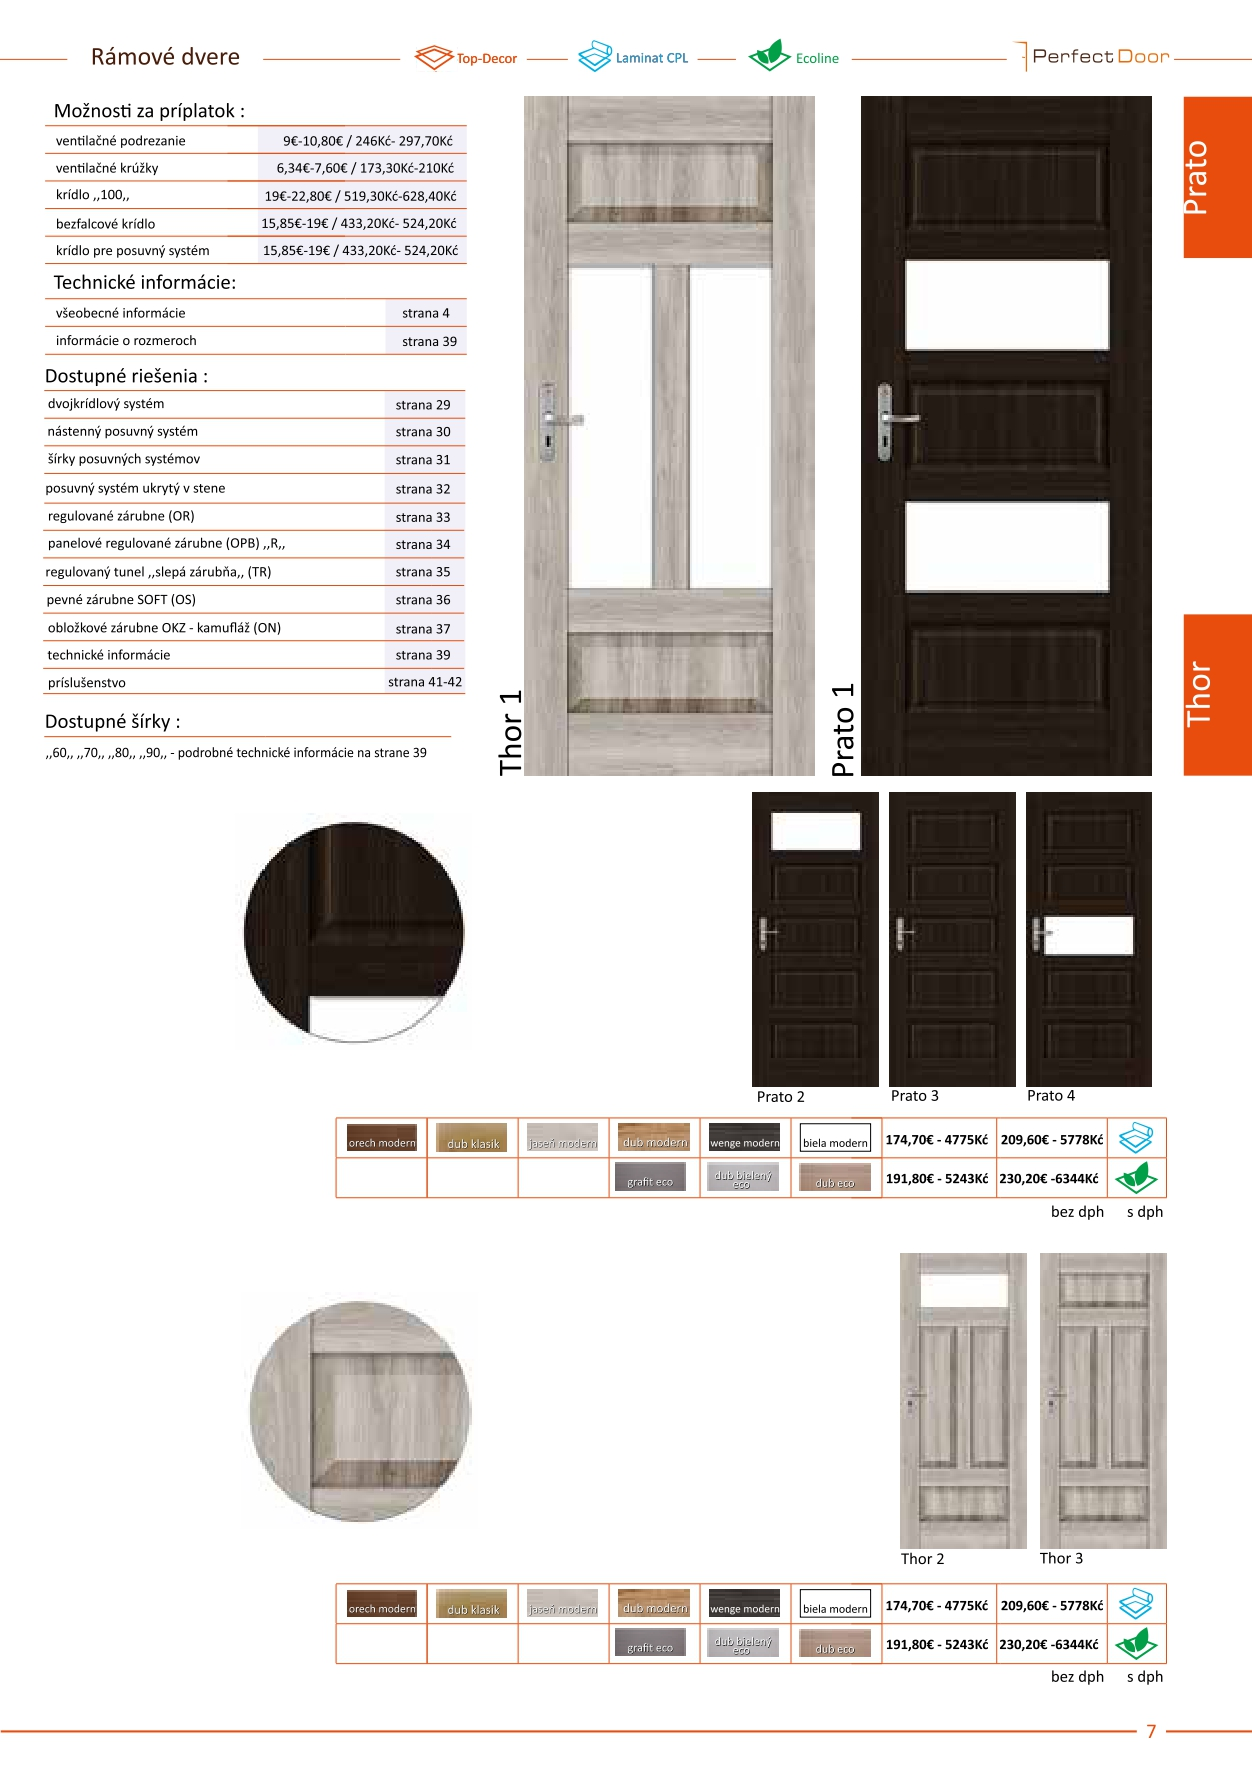 Perfectdoor katalog  1 2019 pages-to-jpg-0007